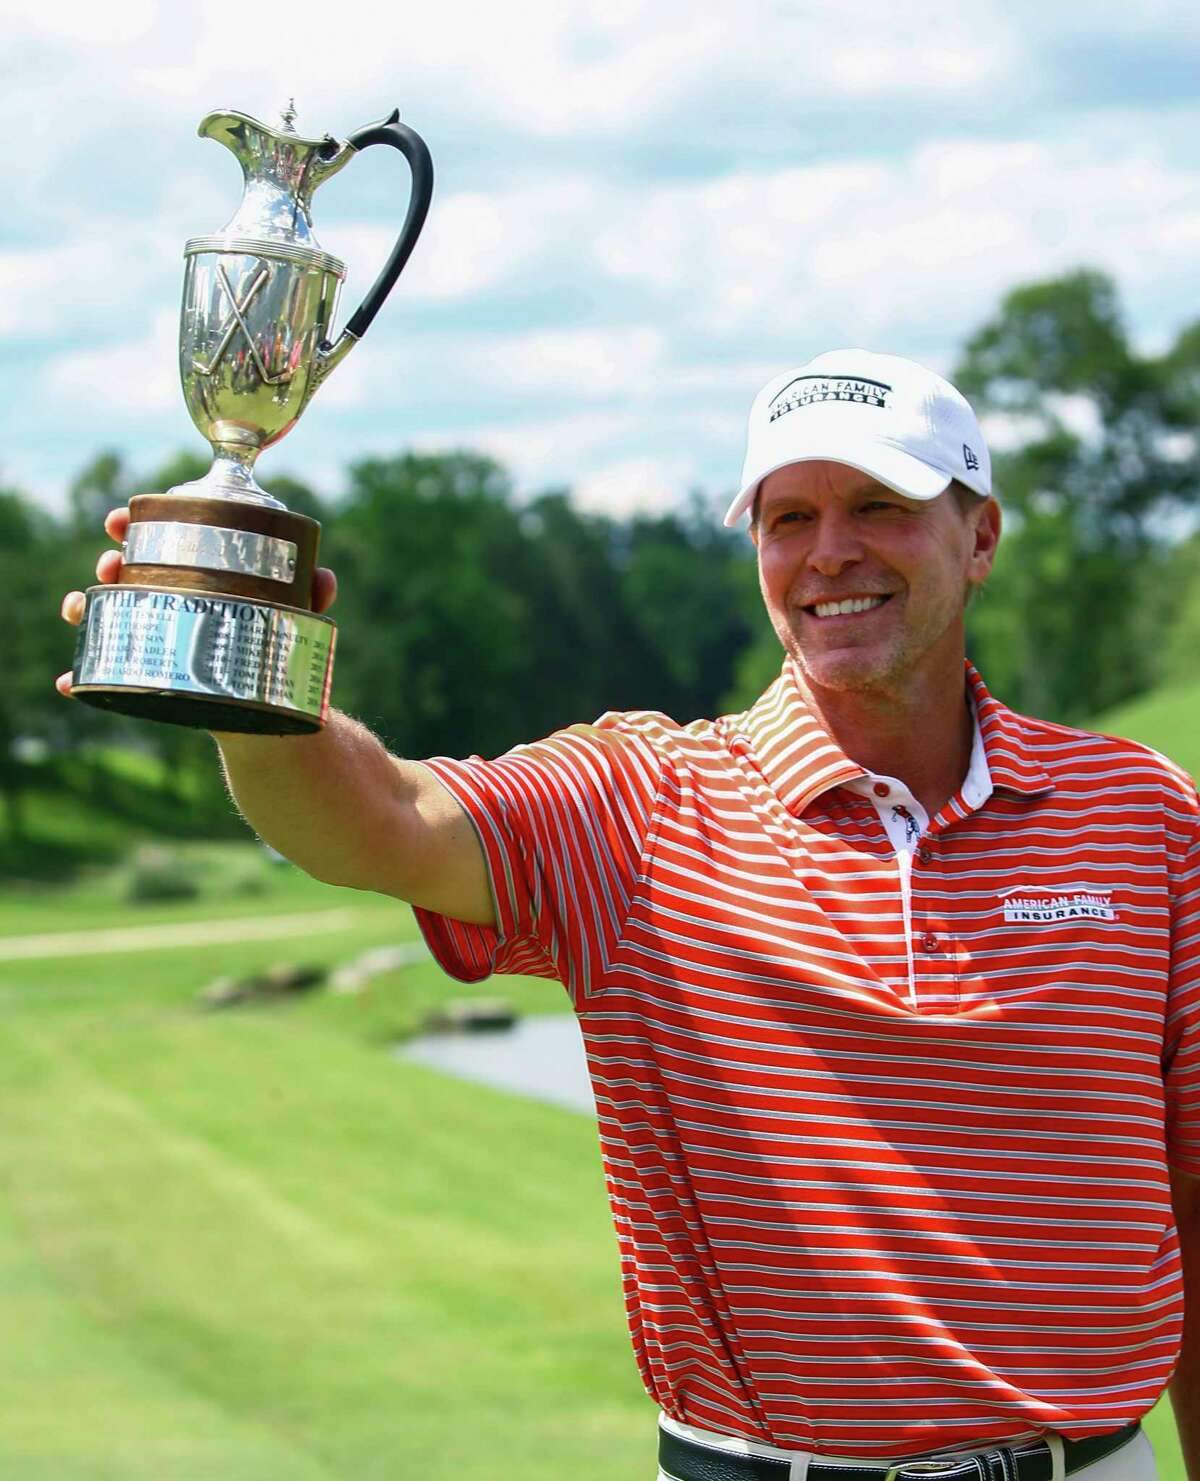 Steve Stricker holds up the trophy after winning the Regions Tradition Champions Tour golf tournament, Monday, May 13, 2019, in Birmingham, Ala. (AP Photo/Butch Dill)